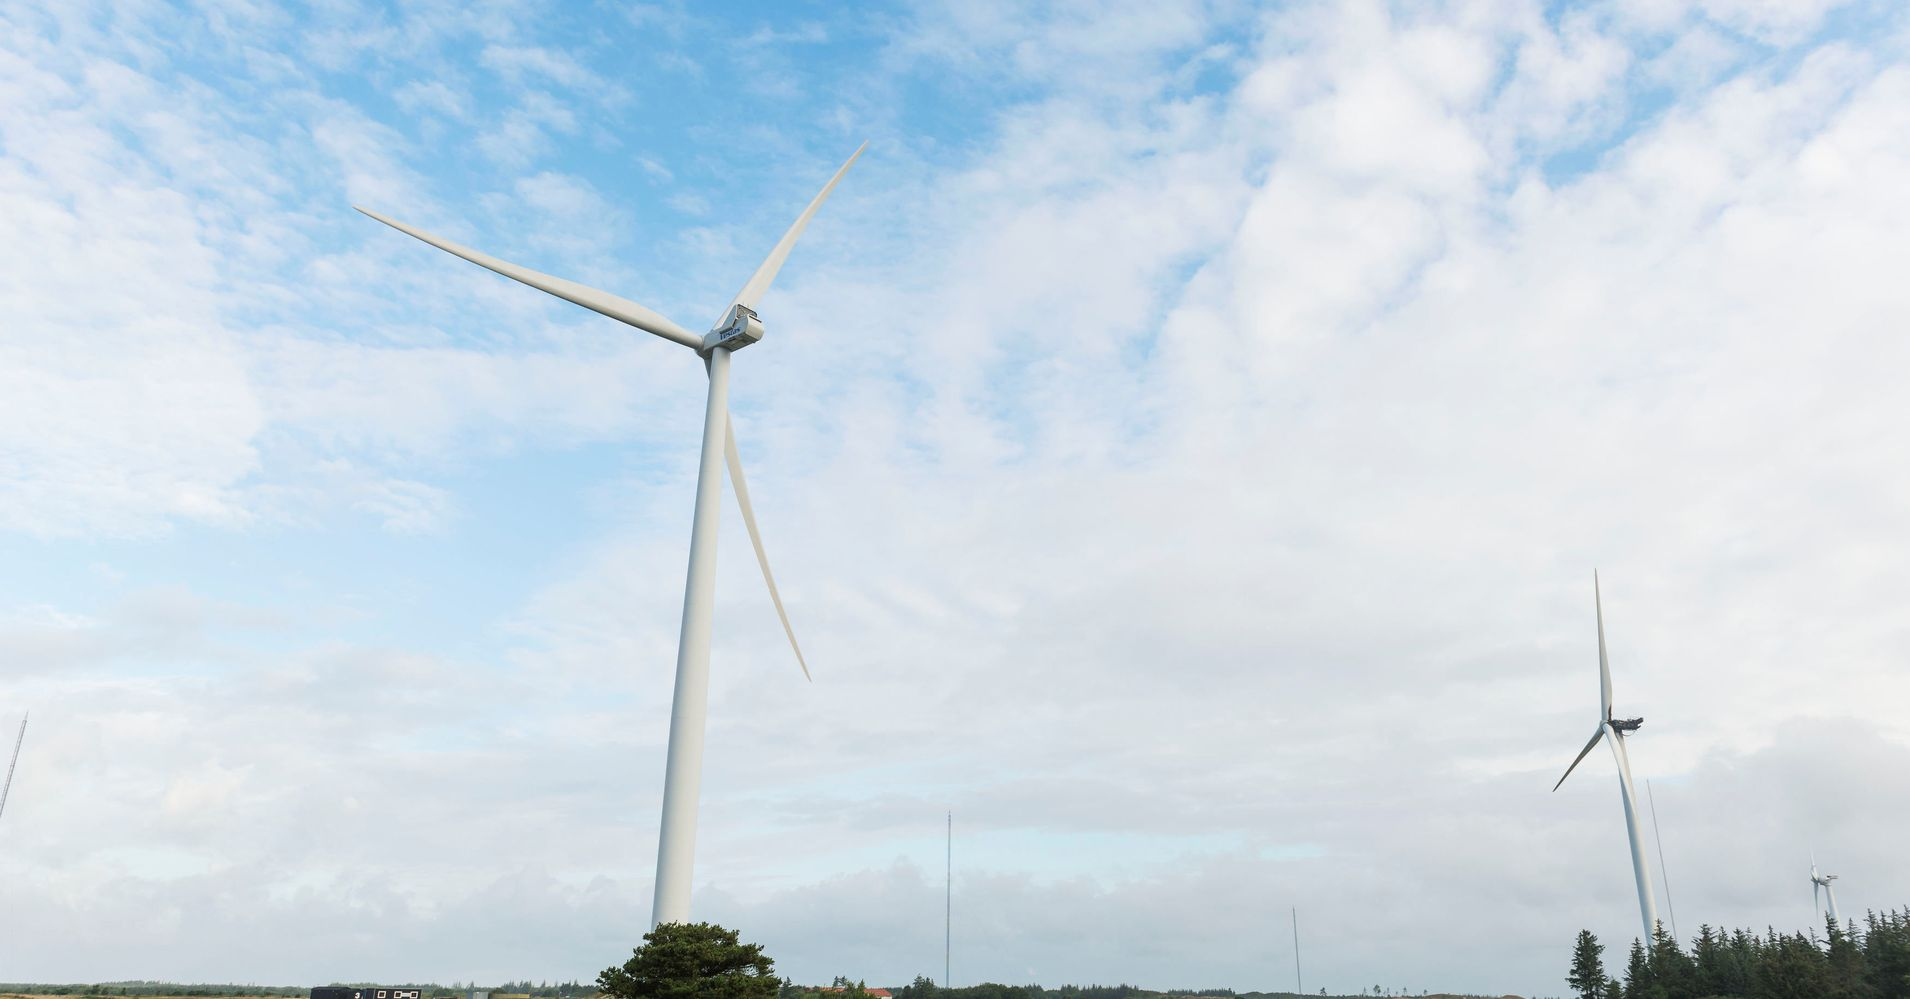 Denmark Is Selling Off Its Last Oil Company And Spending The Money On Wind Power - Denmark has pledged to completely wean itself off fossil fuels by 2050.